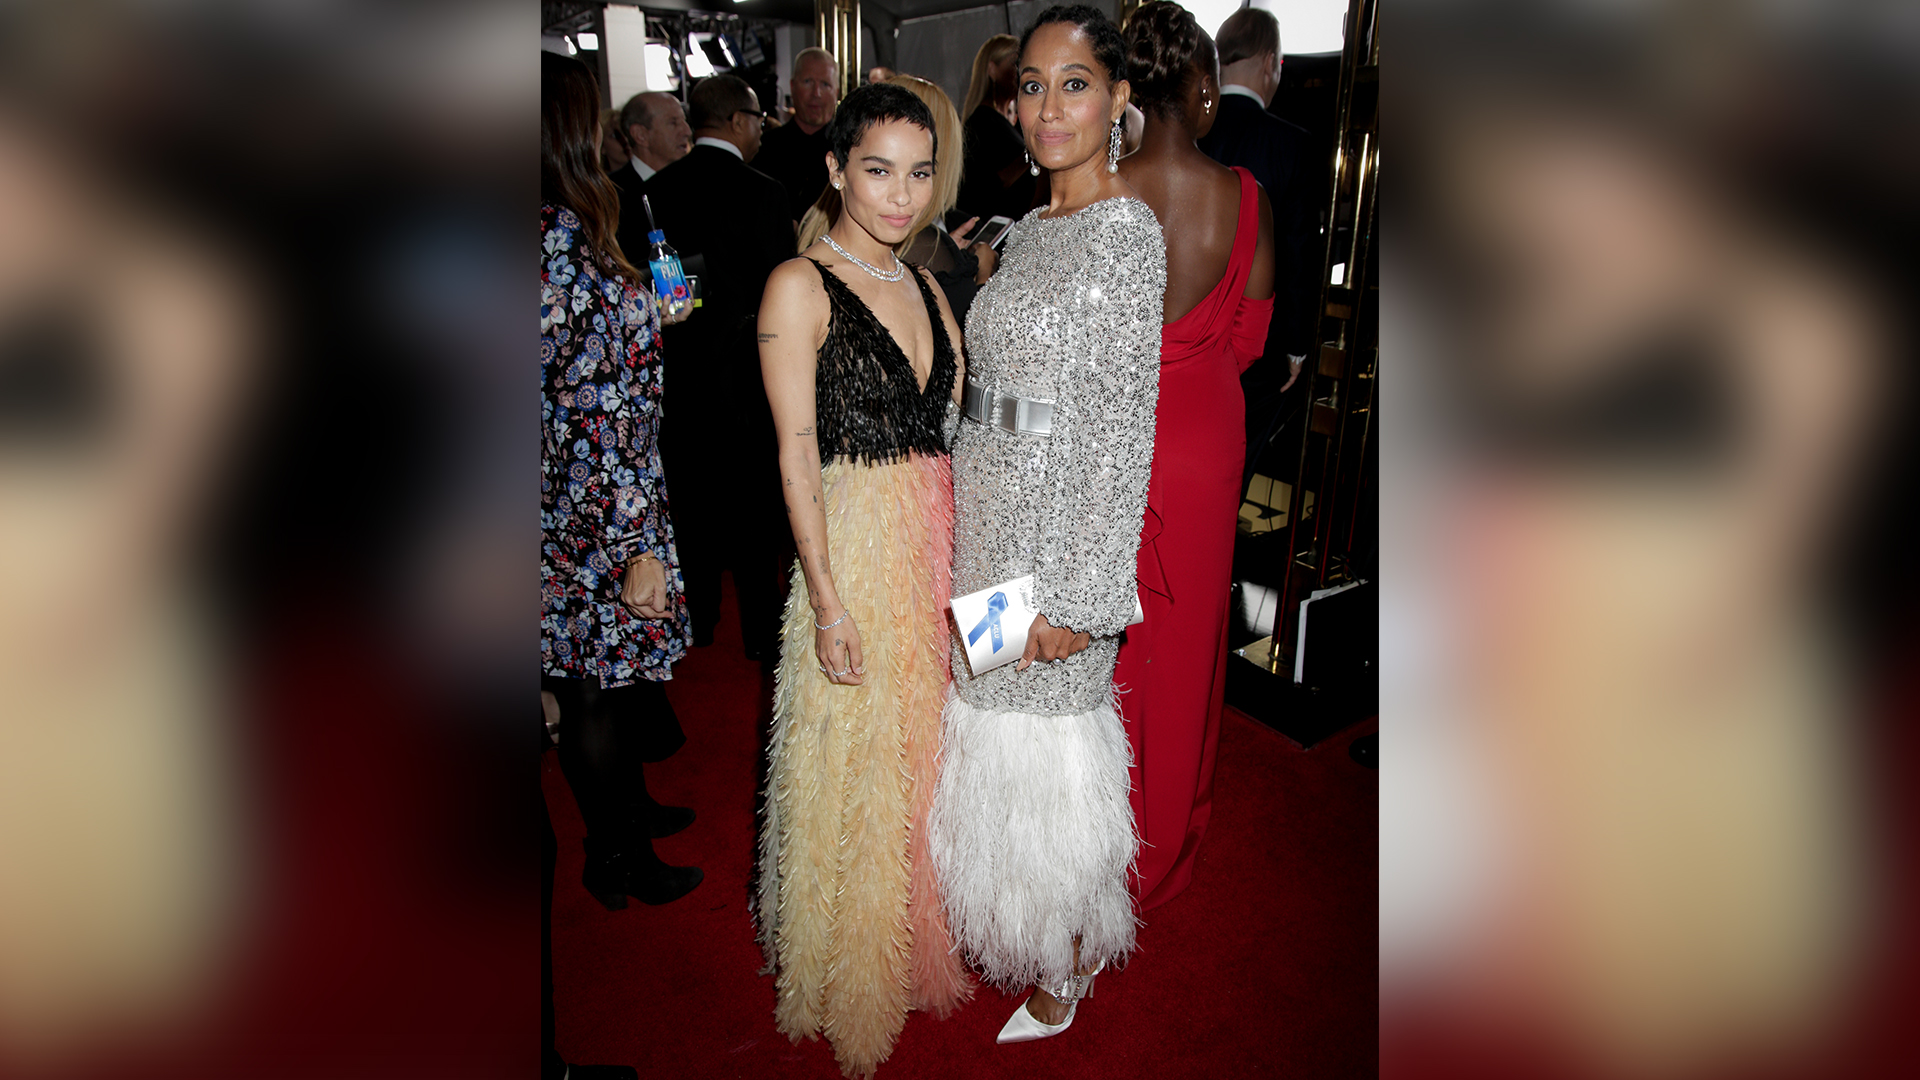 Zoe Kravitz from Big Little Lies and Tracee Ellis Ross from Black-ish